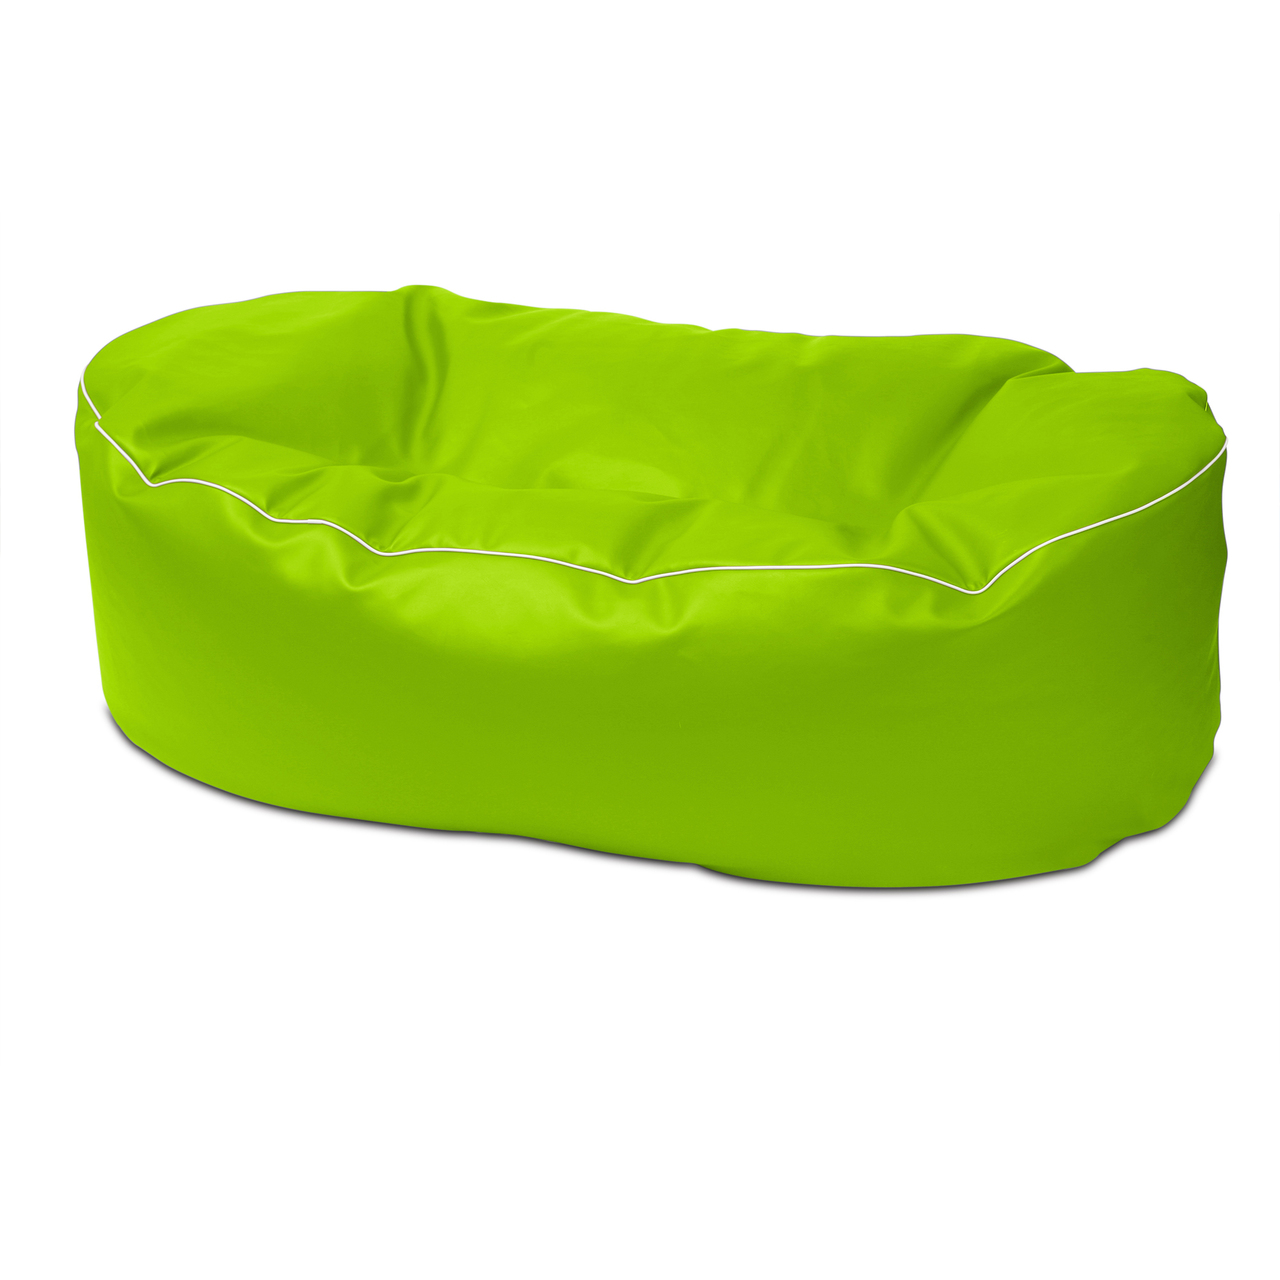 Retro 2m Couch in lime